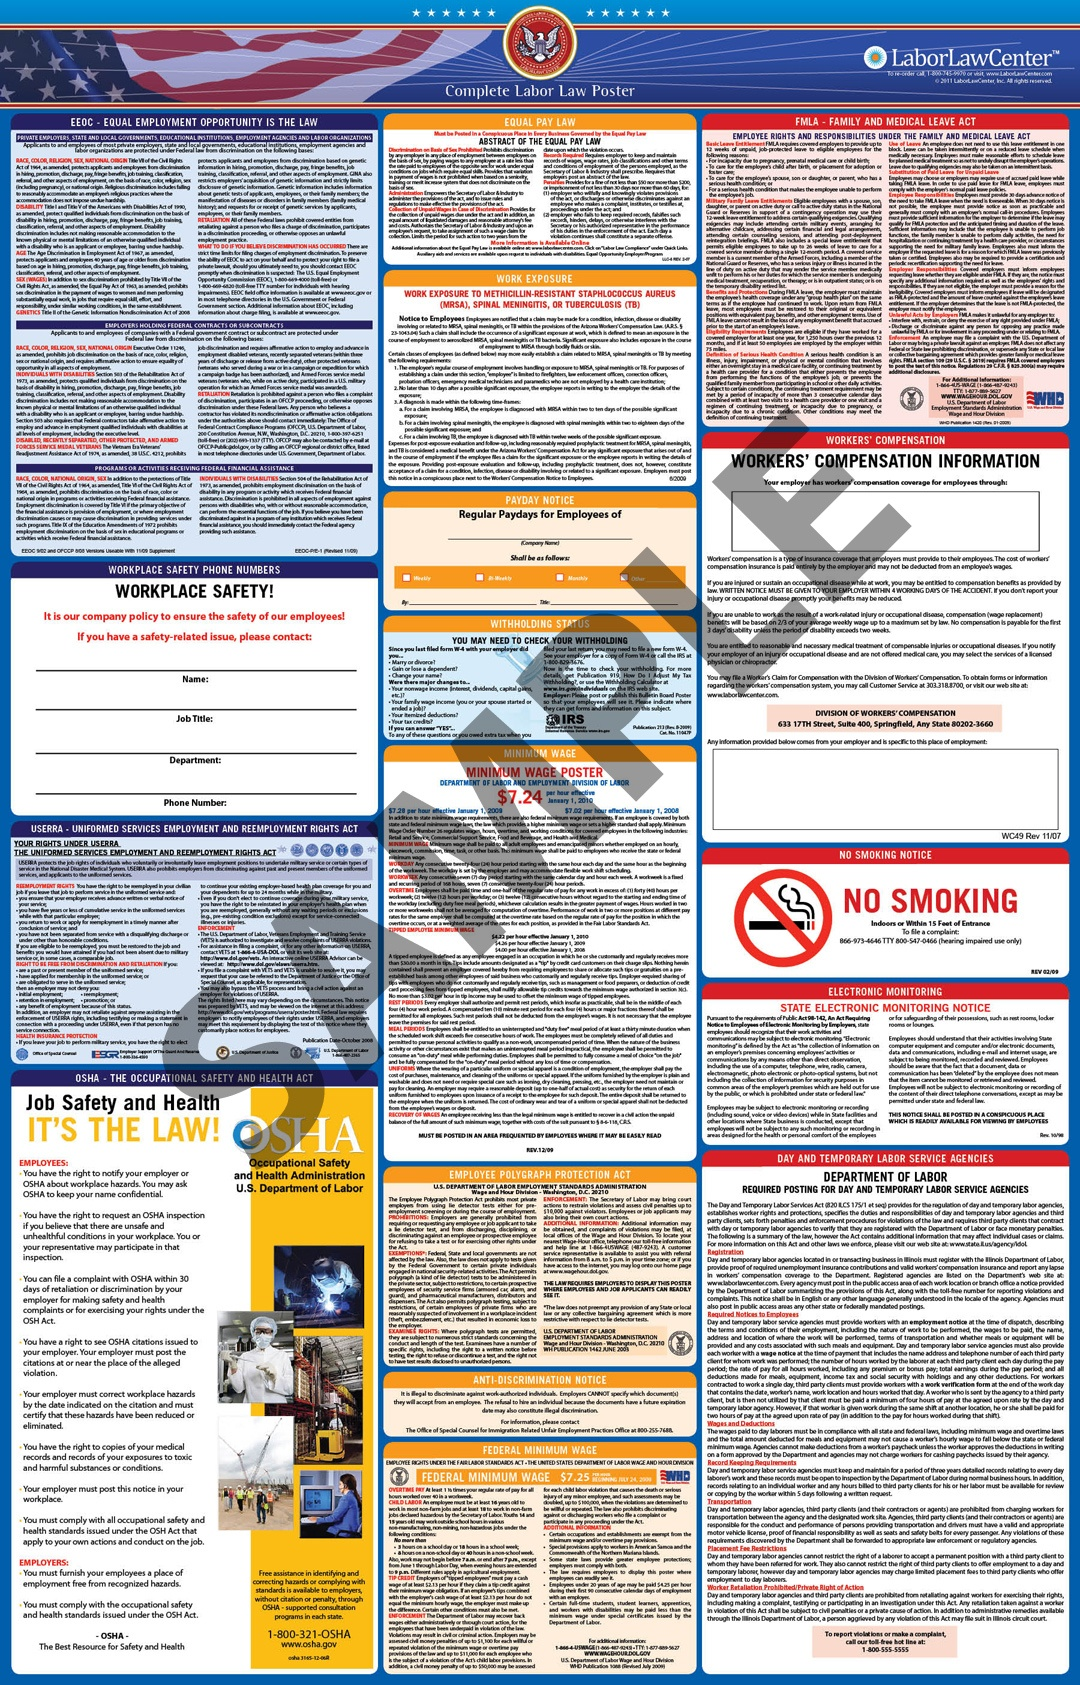 Faqs On Labor Law Posters | Laborlawcenter - Free Printable Osha Safety Posters